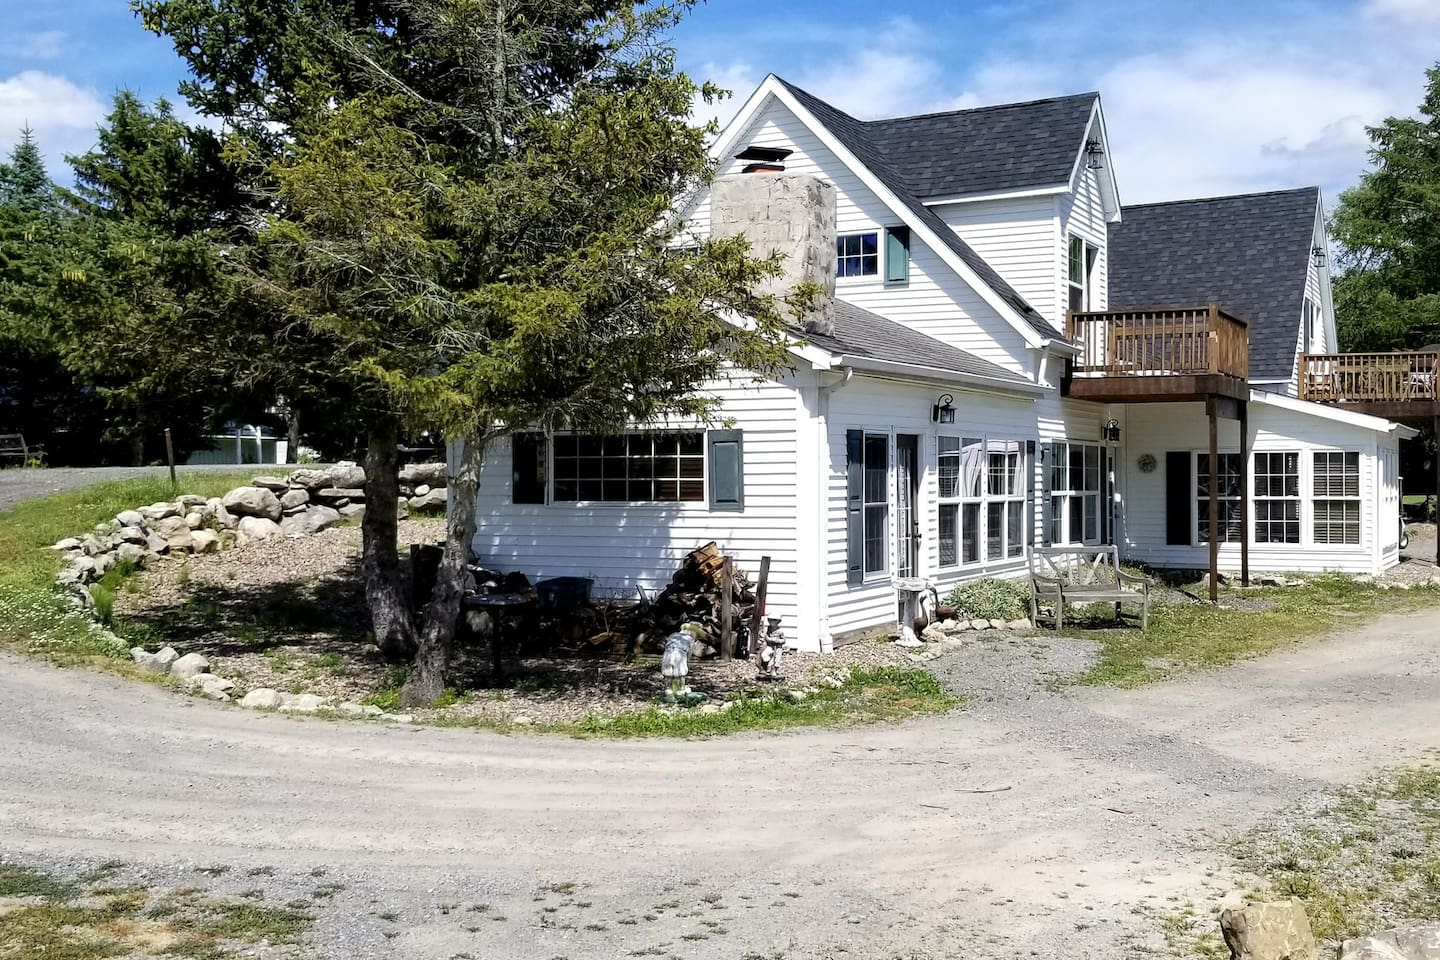 Remodeled home on golf course with beautiful scenery and Adirondack themed rooms!